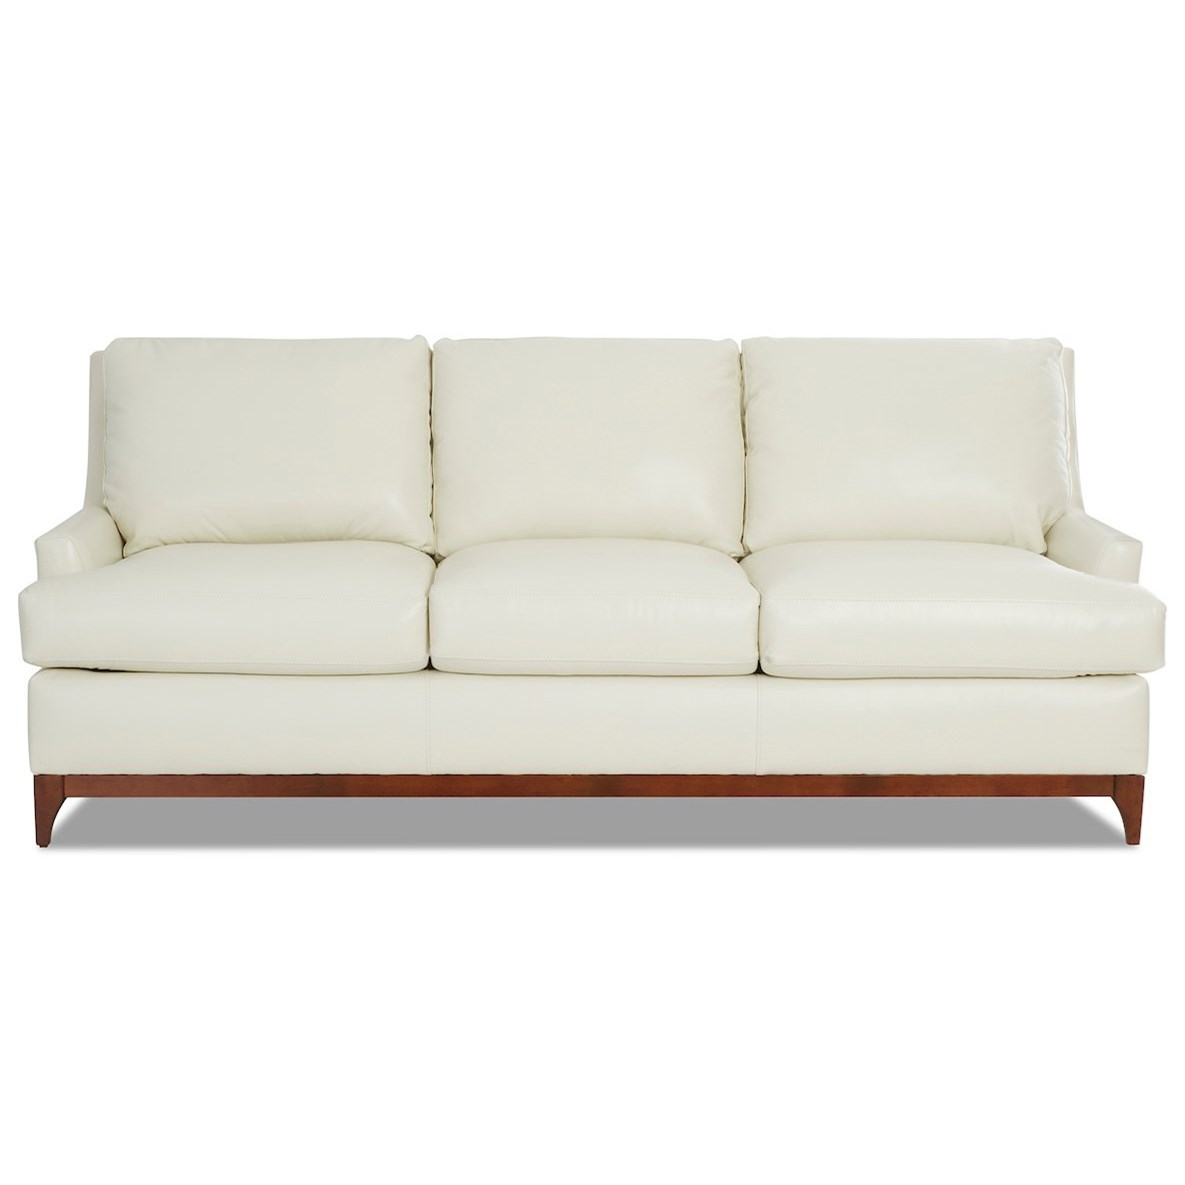 Luca Leather Sofa by Klaussner at Northeast Factory Direct